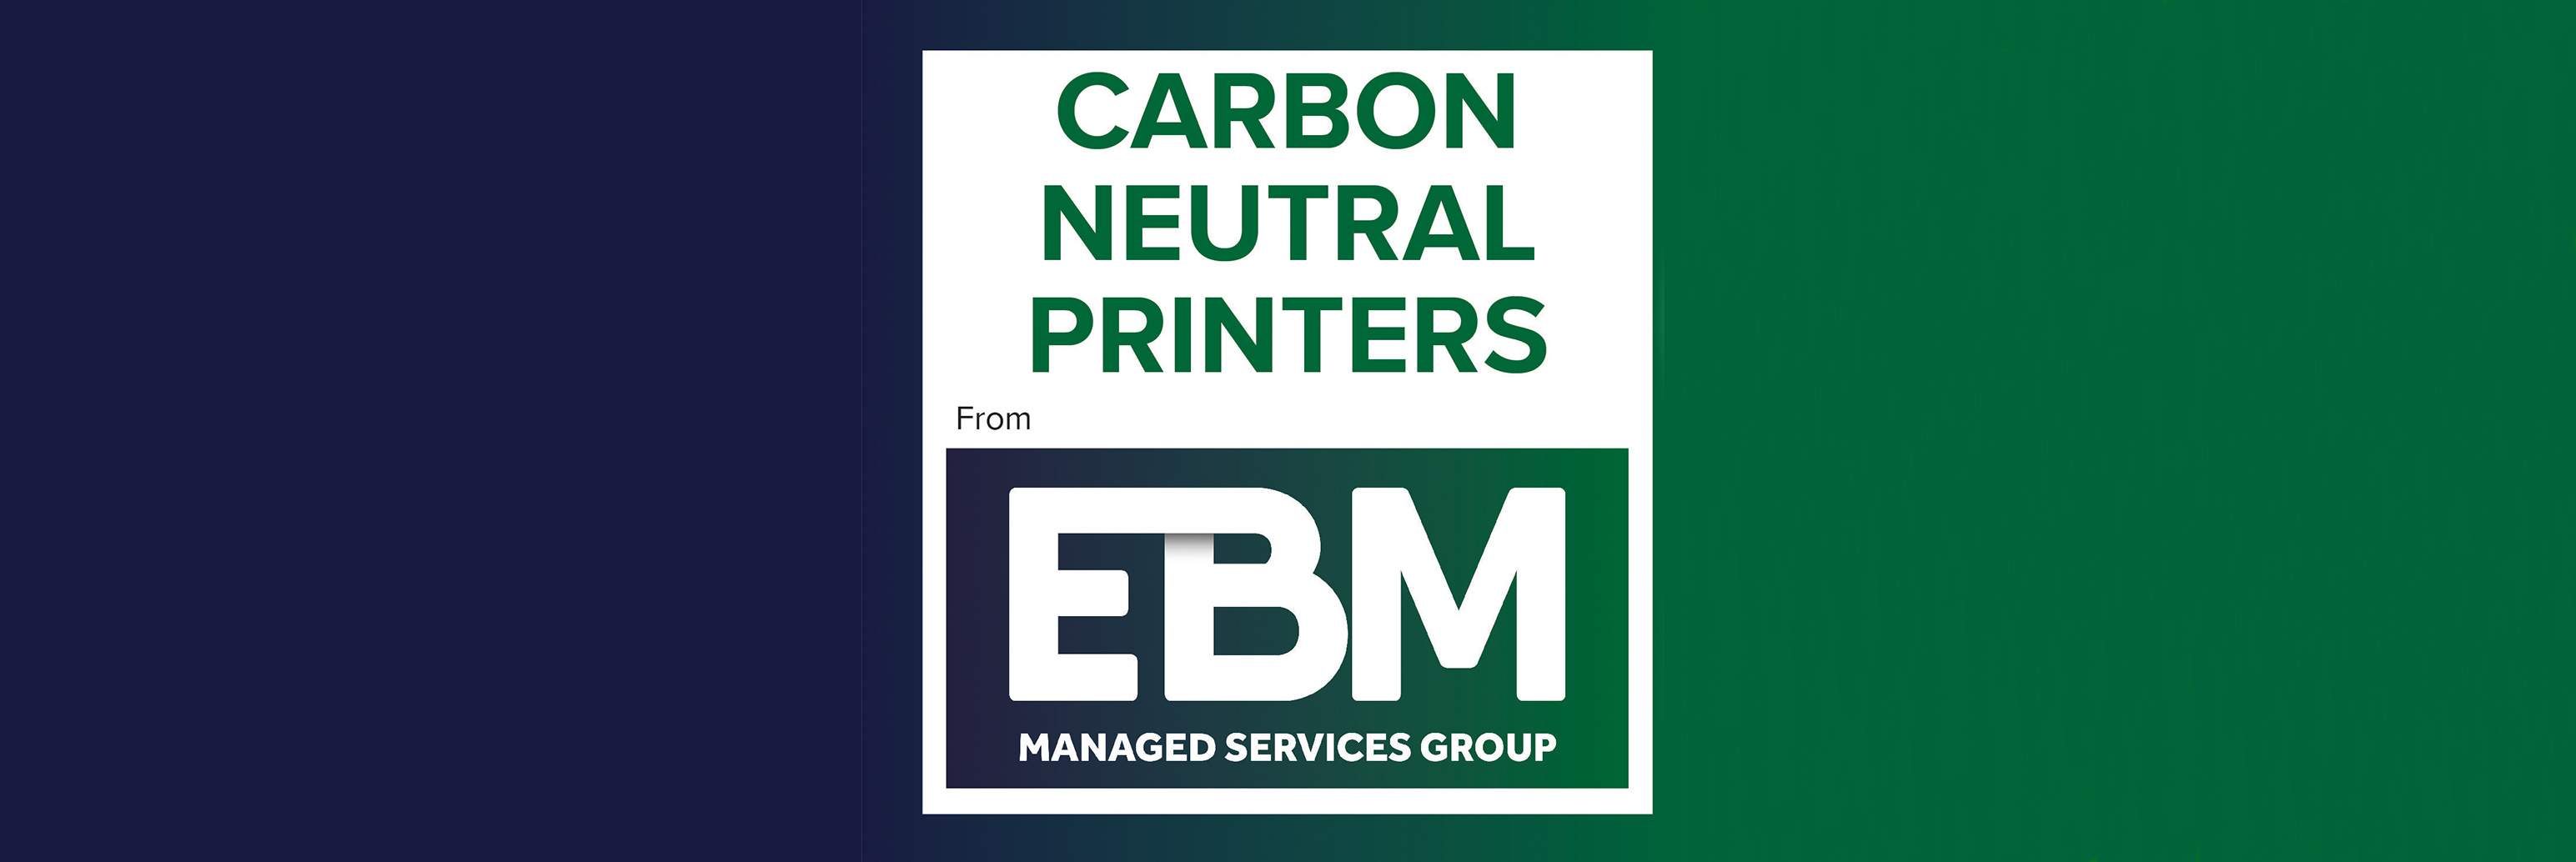 Carbon Neutral Printing with EBM